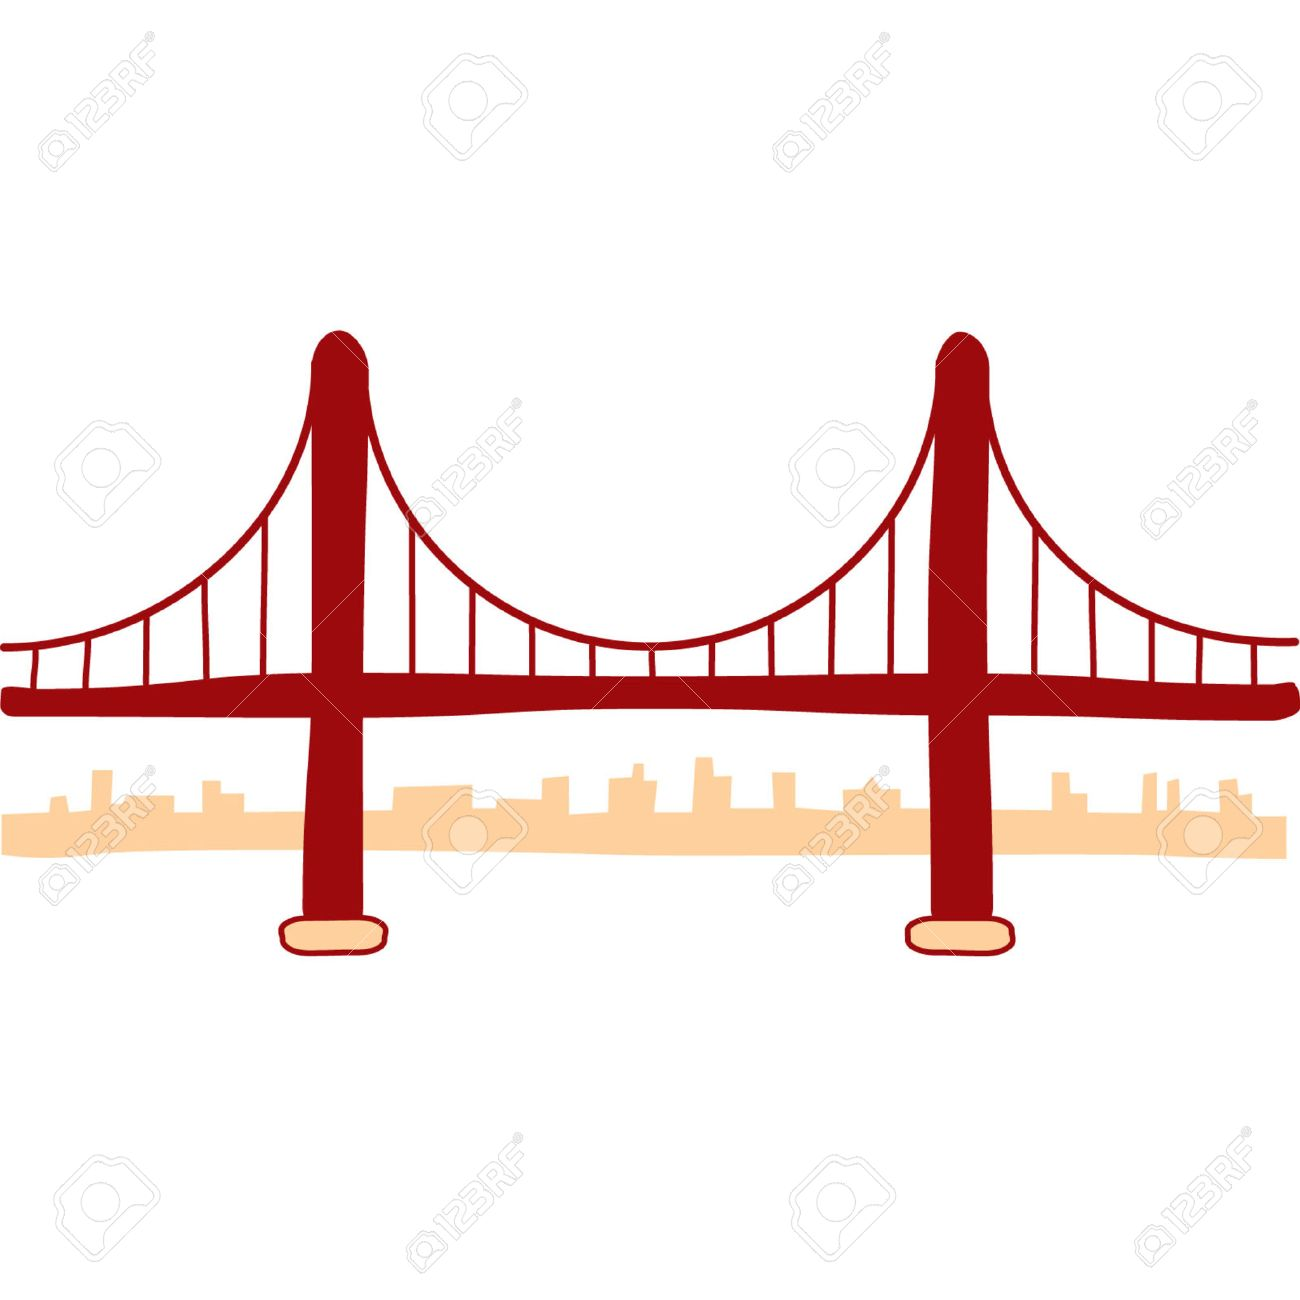 golden gate bridge illustration royalty free cliparts vectors and rh 123rf com Golden Gate Bridge SVG Golden Gate Bridge Illustration